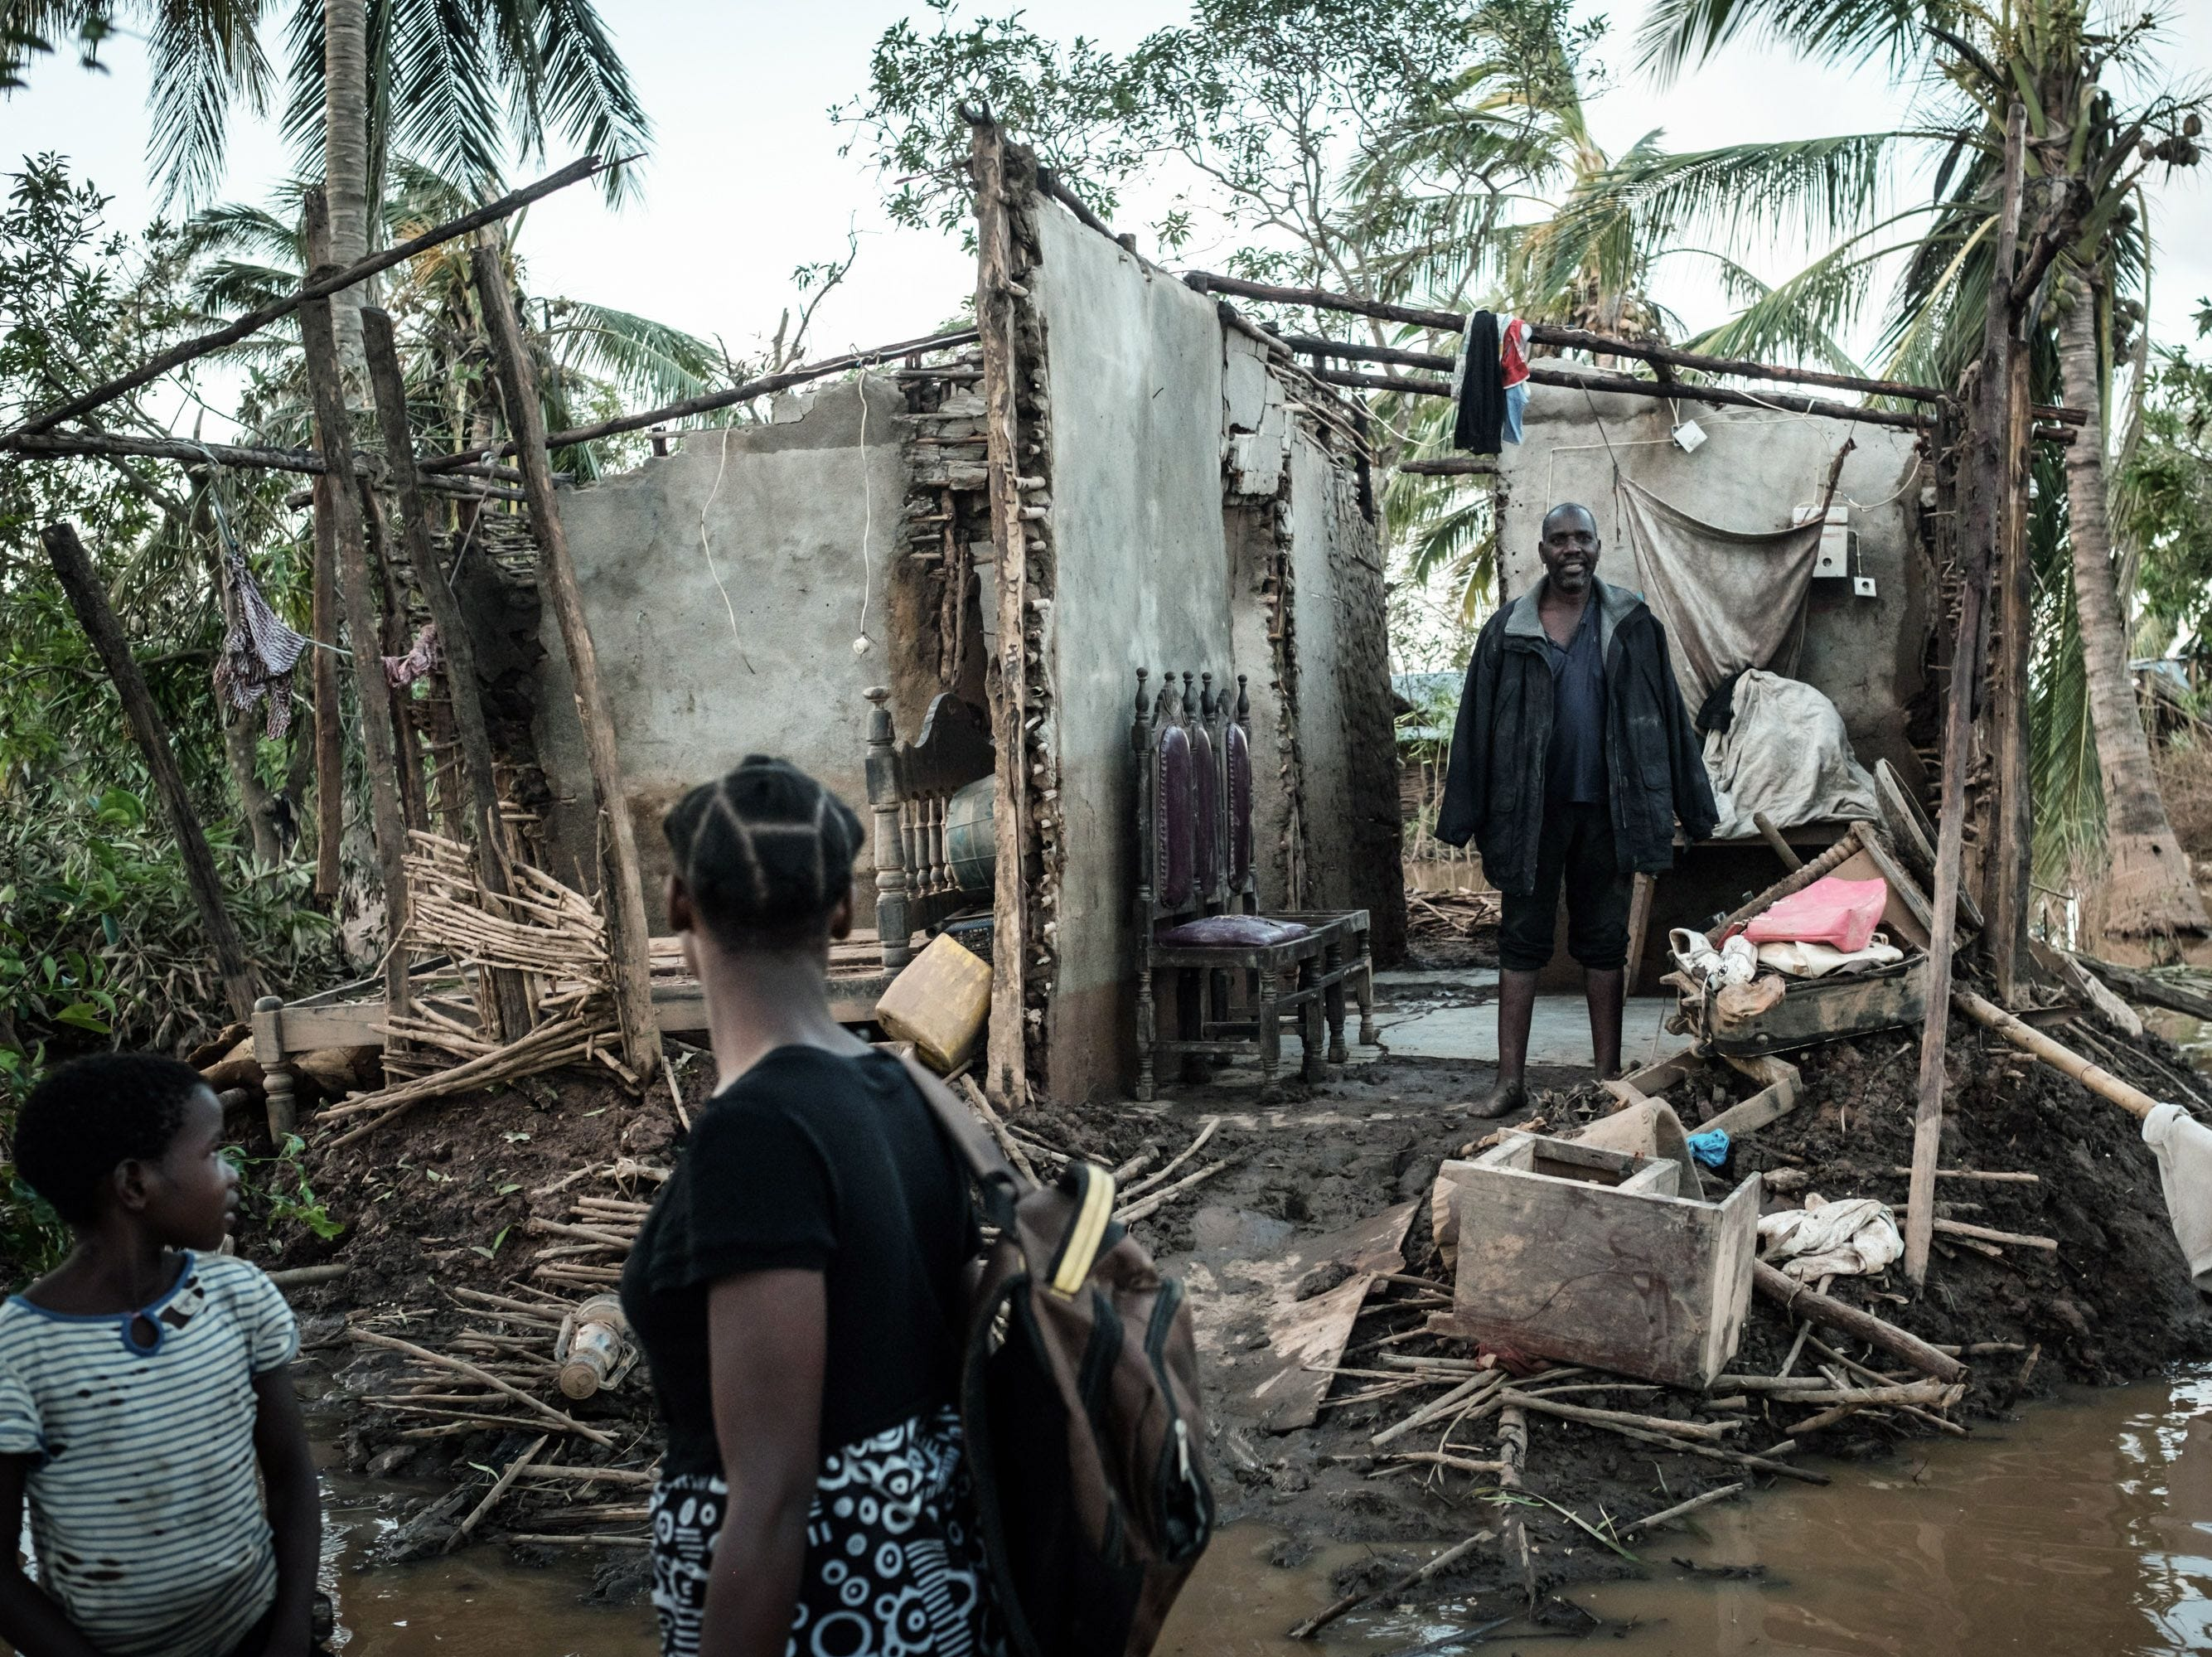 Rosita Moises Zacarias, center, 15, and her sister Joaninha Manuel, left, 9, look at their father Francisco Simon in their house destroyed by the cyclone Idai as they go to seep in a shelter in Buzi, Mozambique, on March 22, 2019.